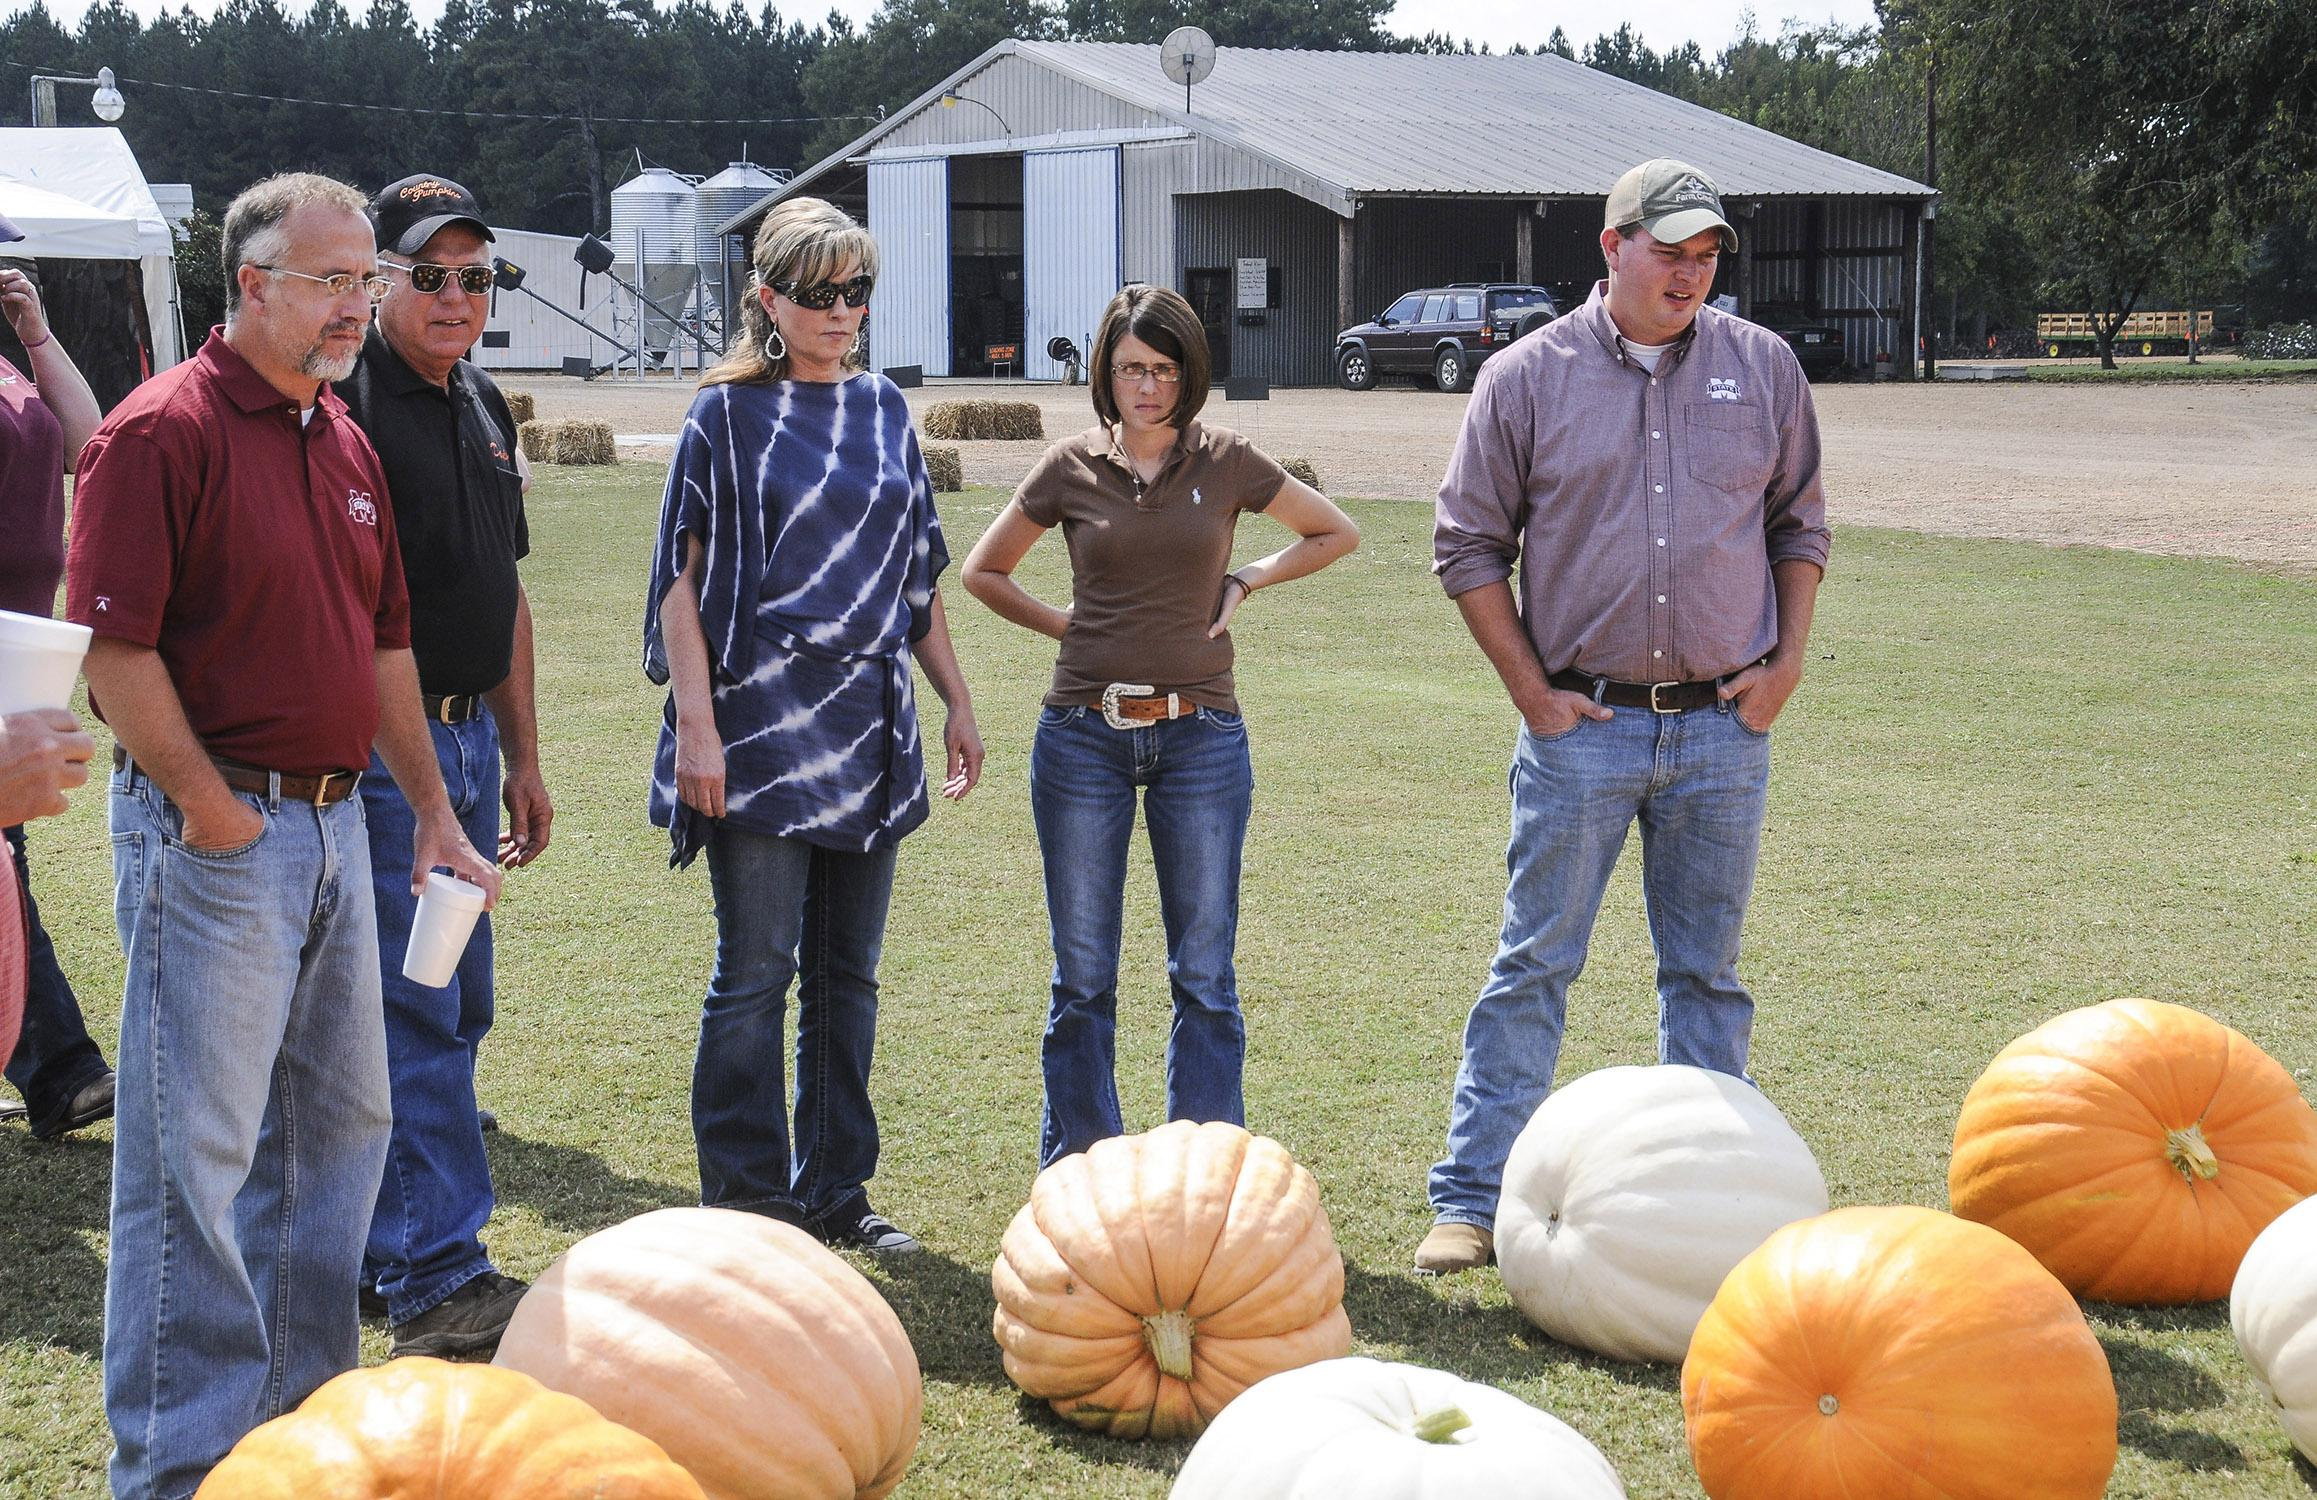 Extension agricultural agents review pumpkins recently harvested at County Pumpkins in Lowndes County. The fall tour participants include, from left, Jeff Wilson of Lowndes County, farm owner Dwight Colson of Caledonia, Kimberly Wilborn of Lamar County, Julie White of Oktibbeha County and Reid Nevins of Lowndes County. (Photo by MSU Ag Communications/Scott Corey)